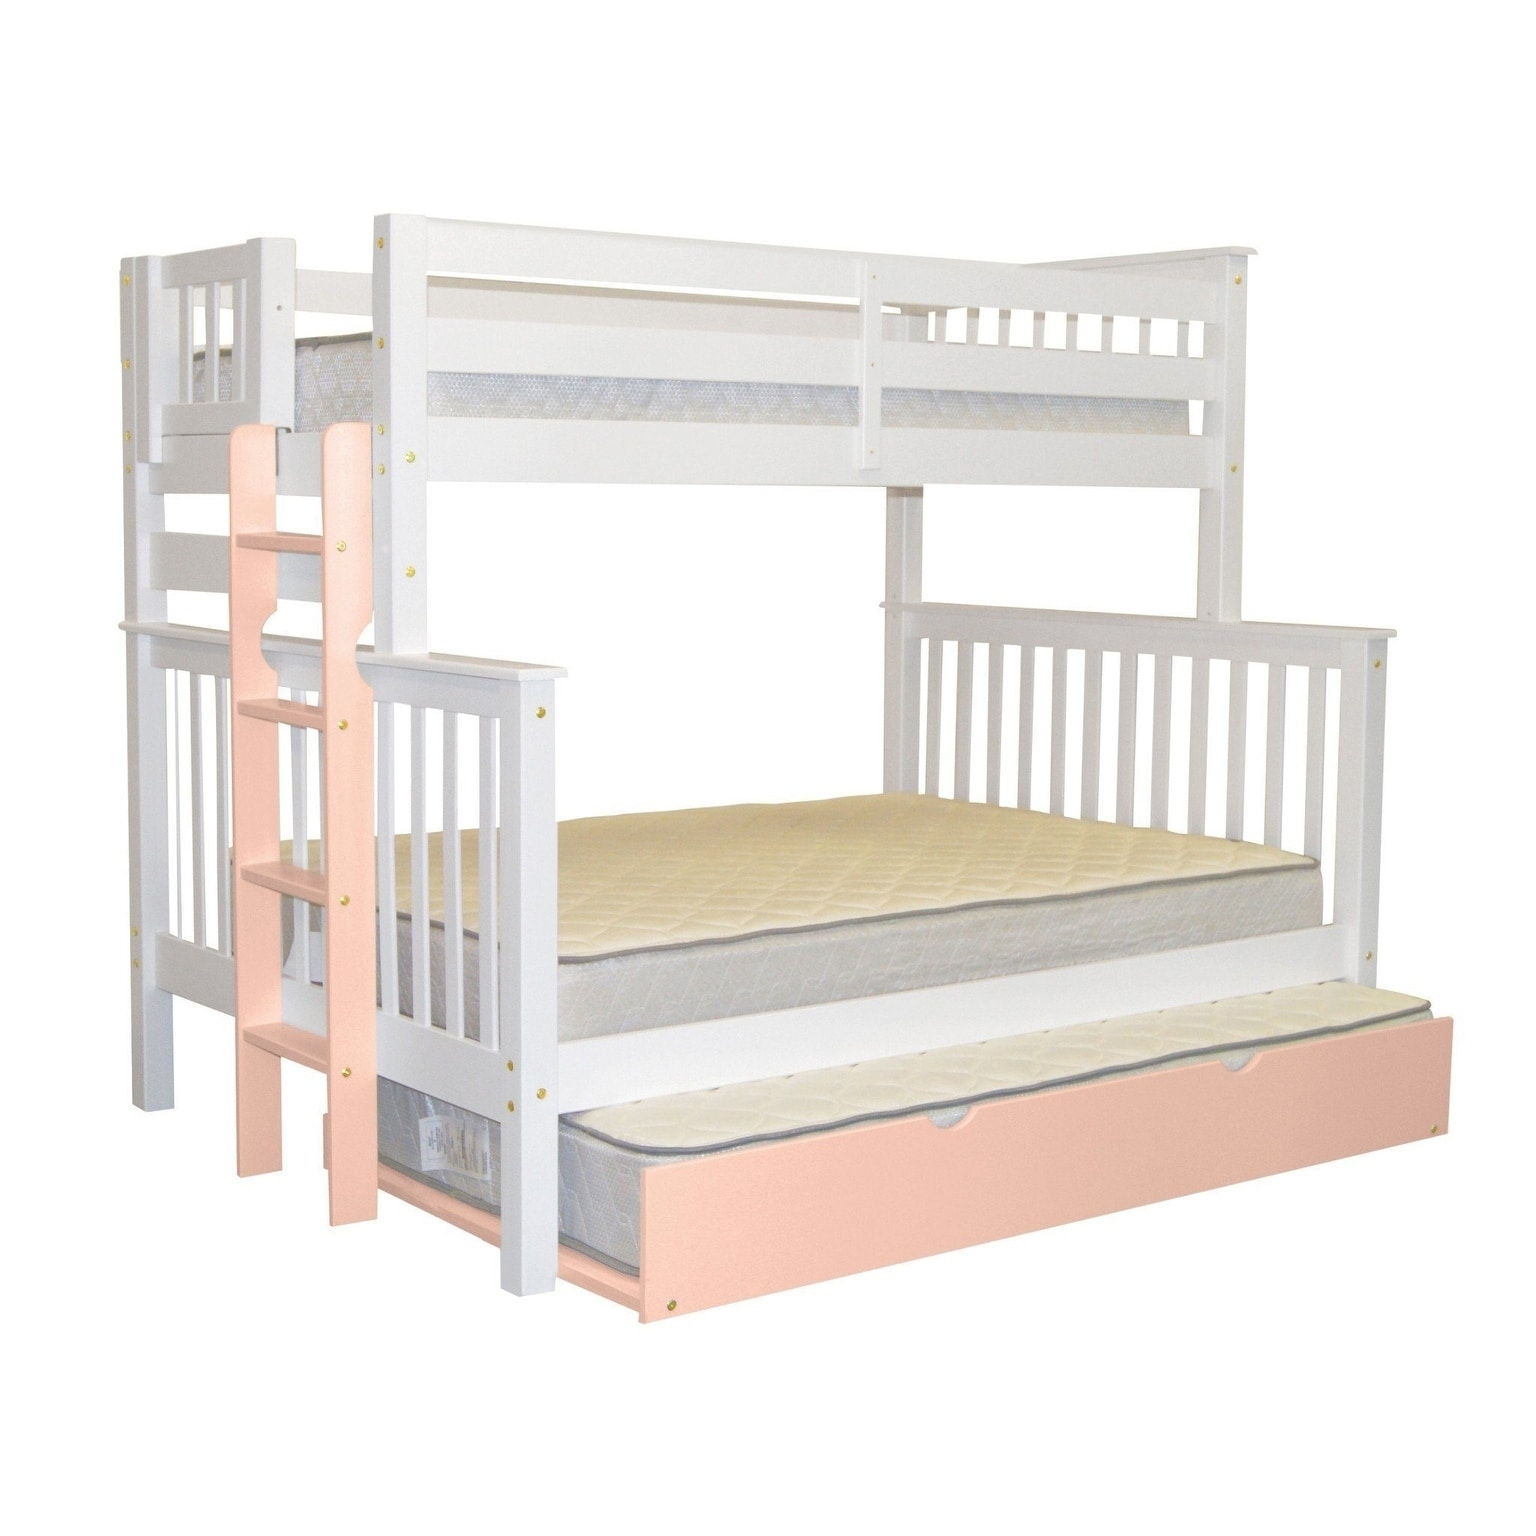 Bedz King Bunk Beds Twin Over Full Mission Style With A Pink End Ladder And A Twin Pink Trundle White Overstock 24241650